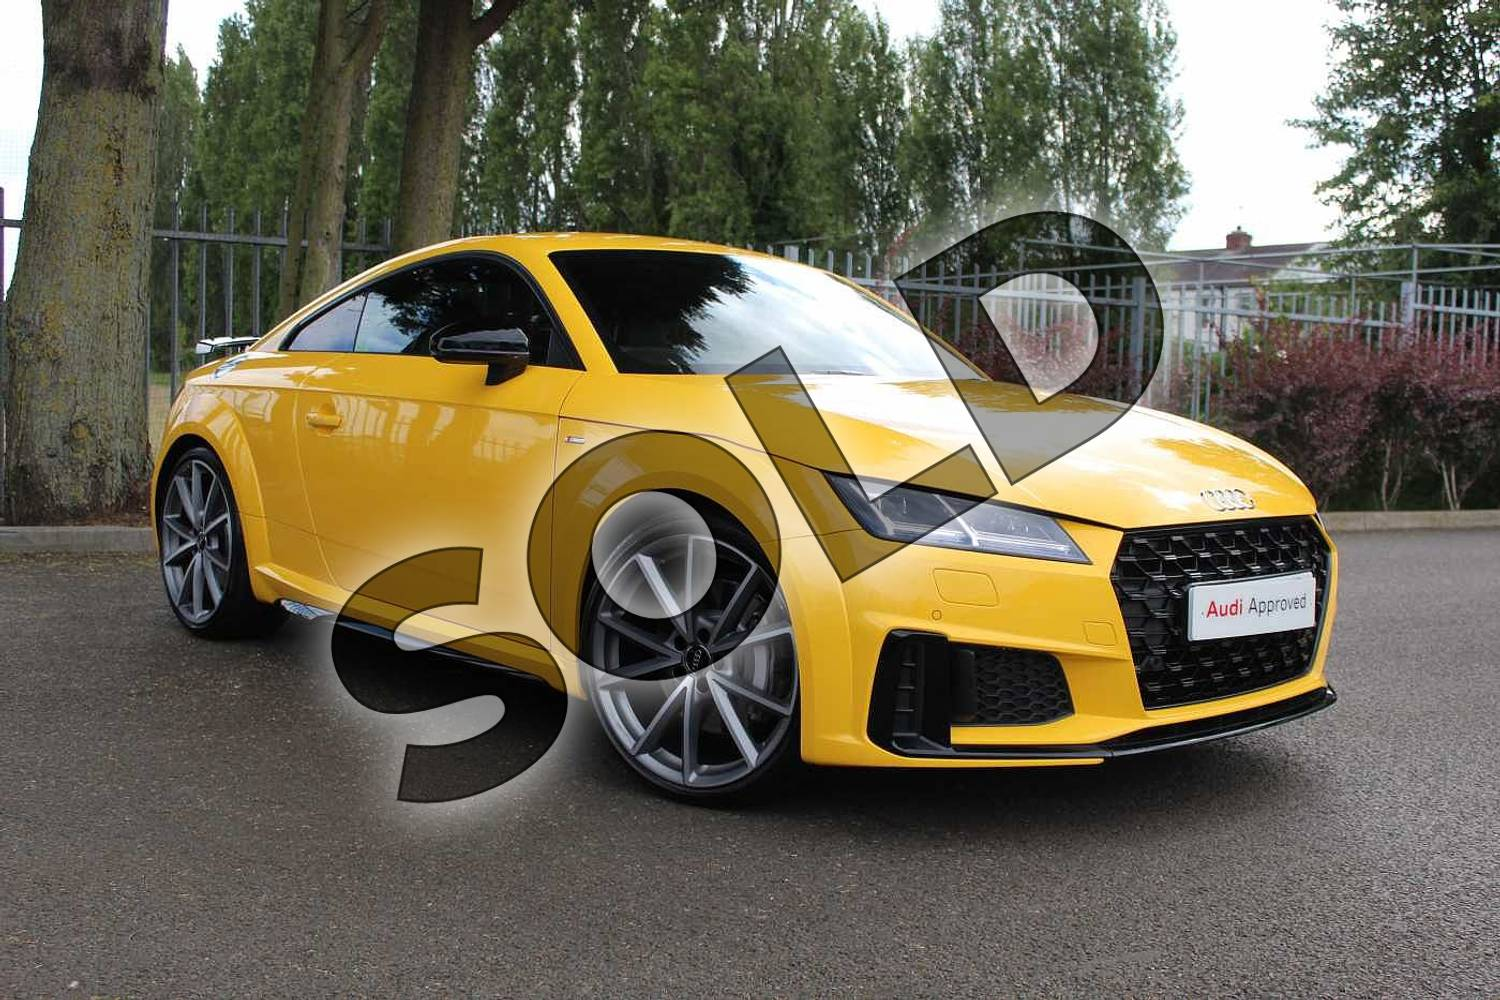 2019 Audi TT Coupe 45 TFSI Black Edition 2dr S Tronic in Vegas Yellow at Coventry Audi